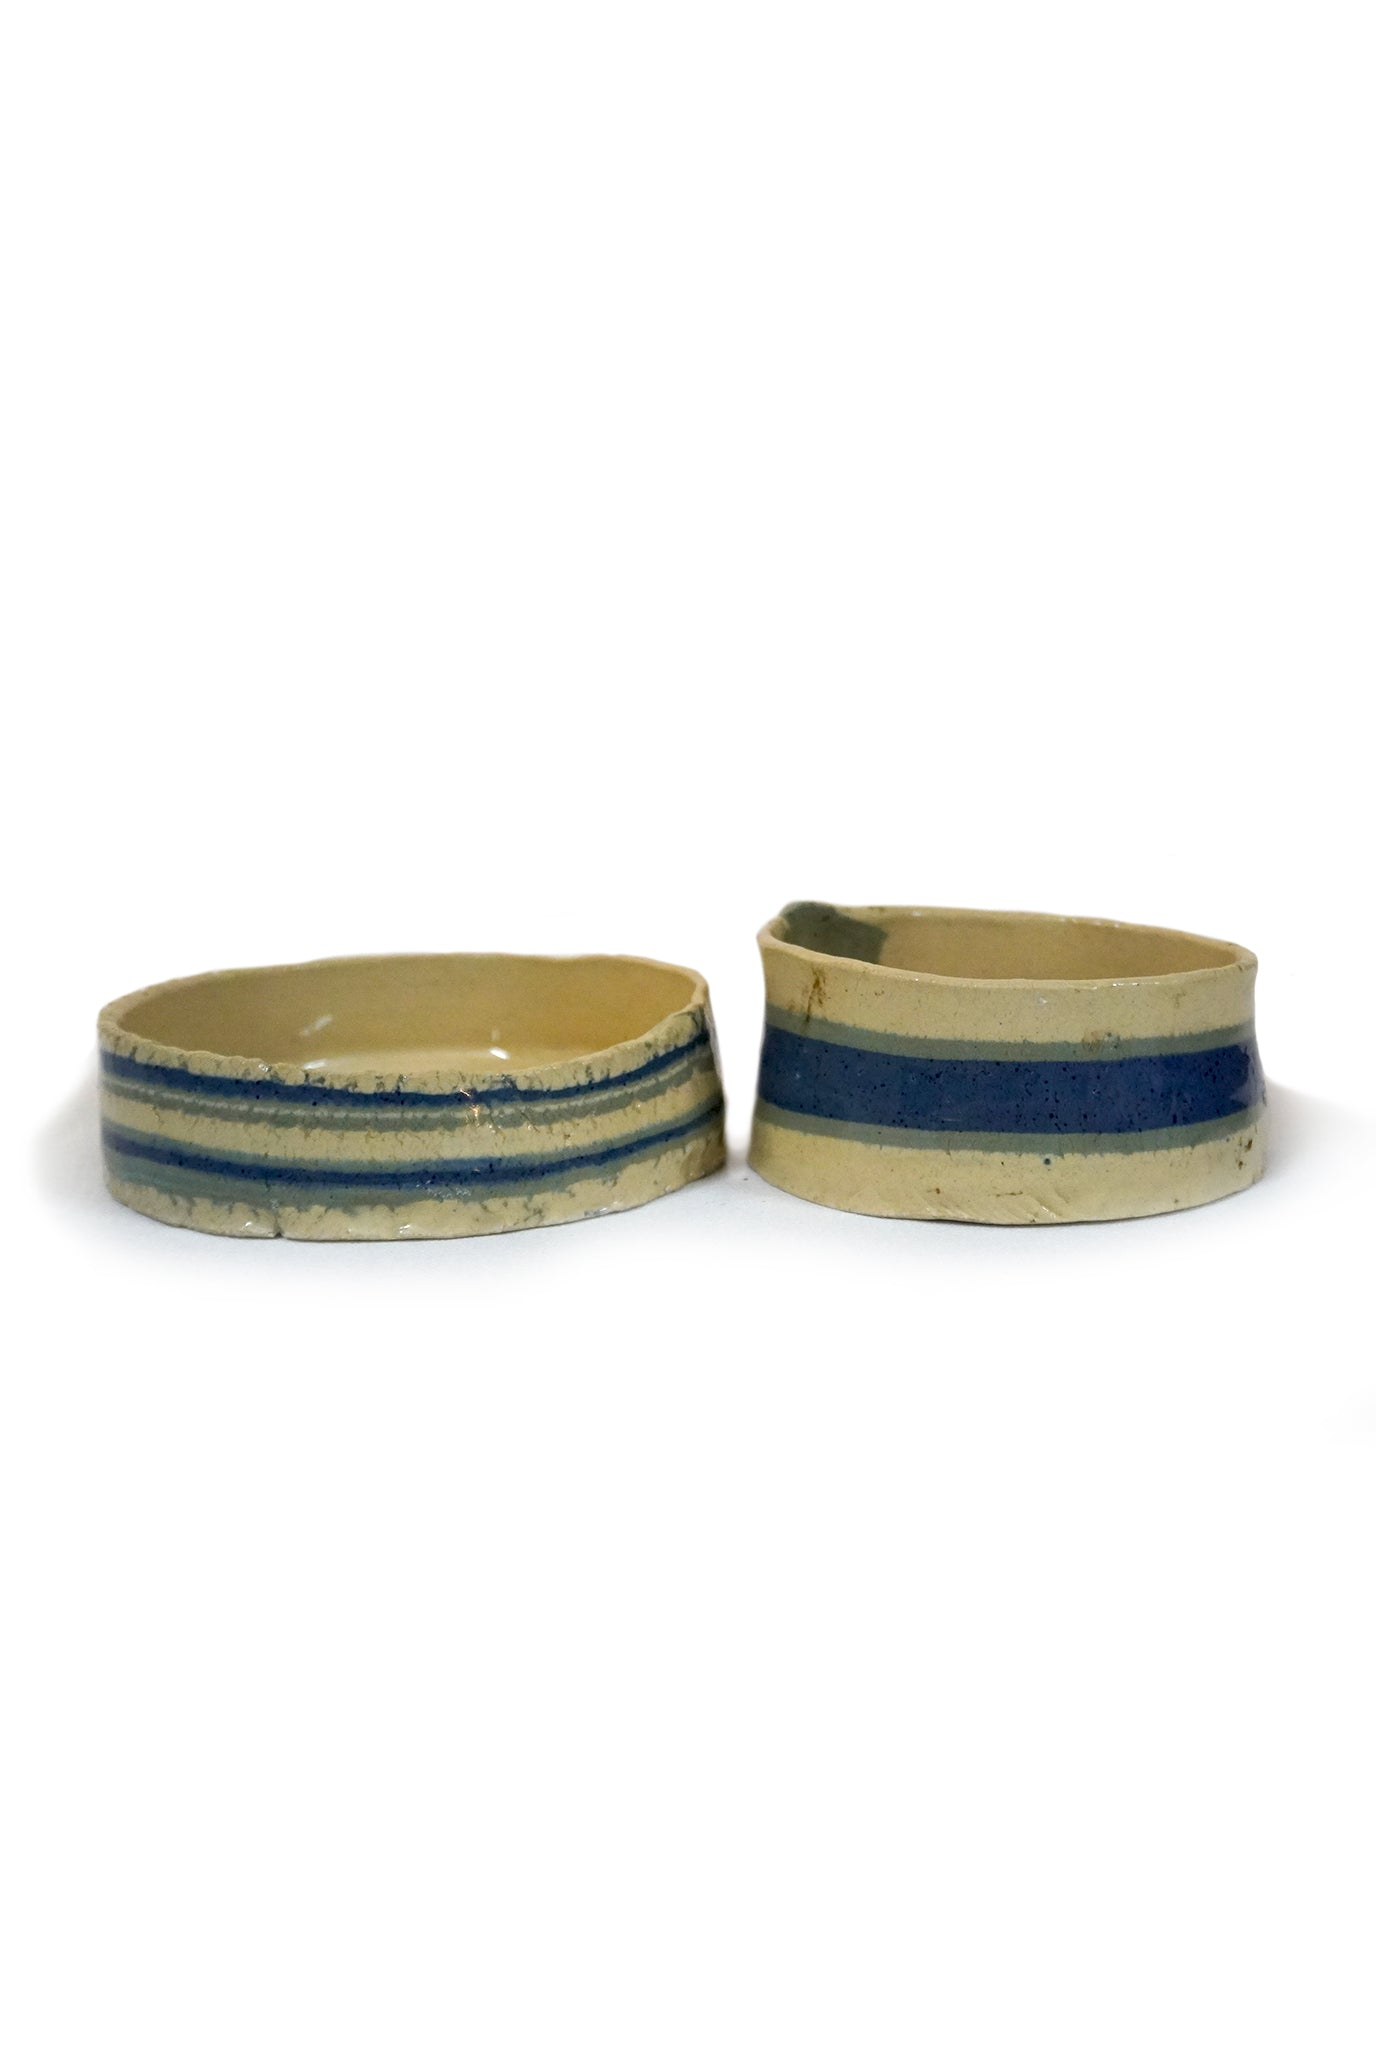 BLUE RIBBON BOWLS - SET OF 2